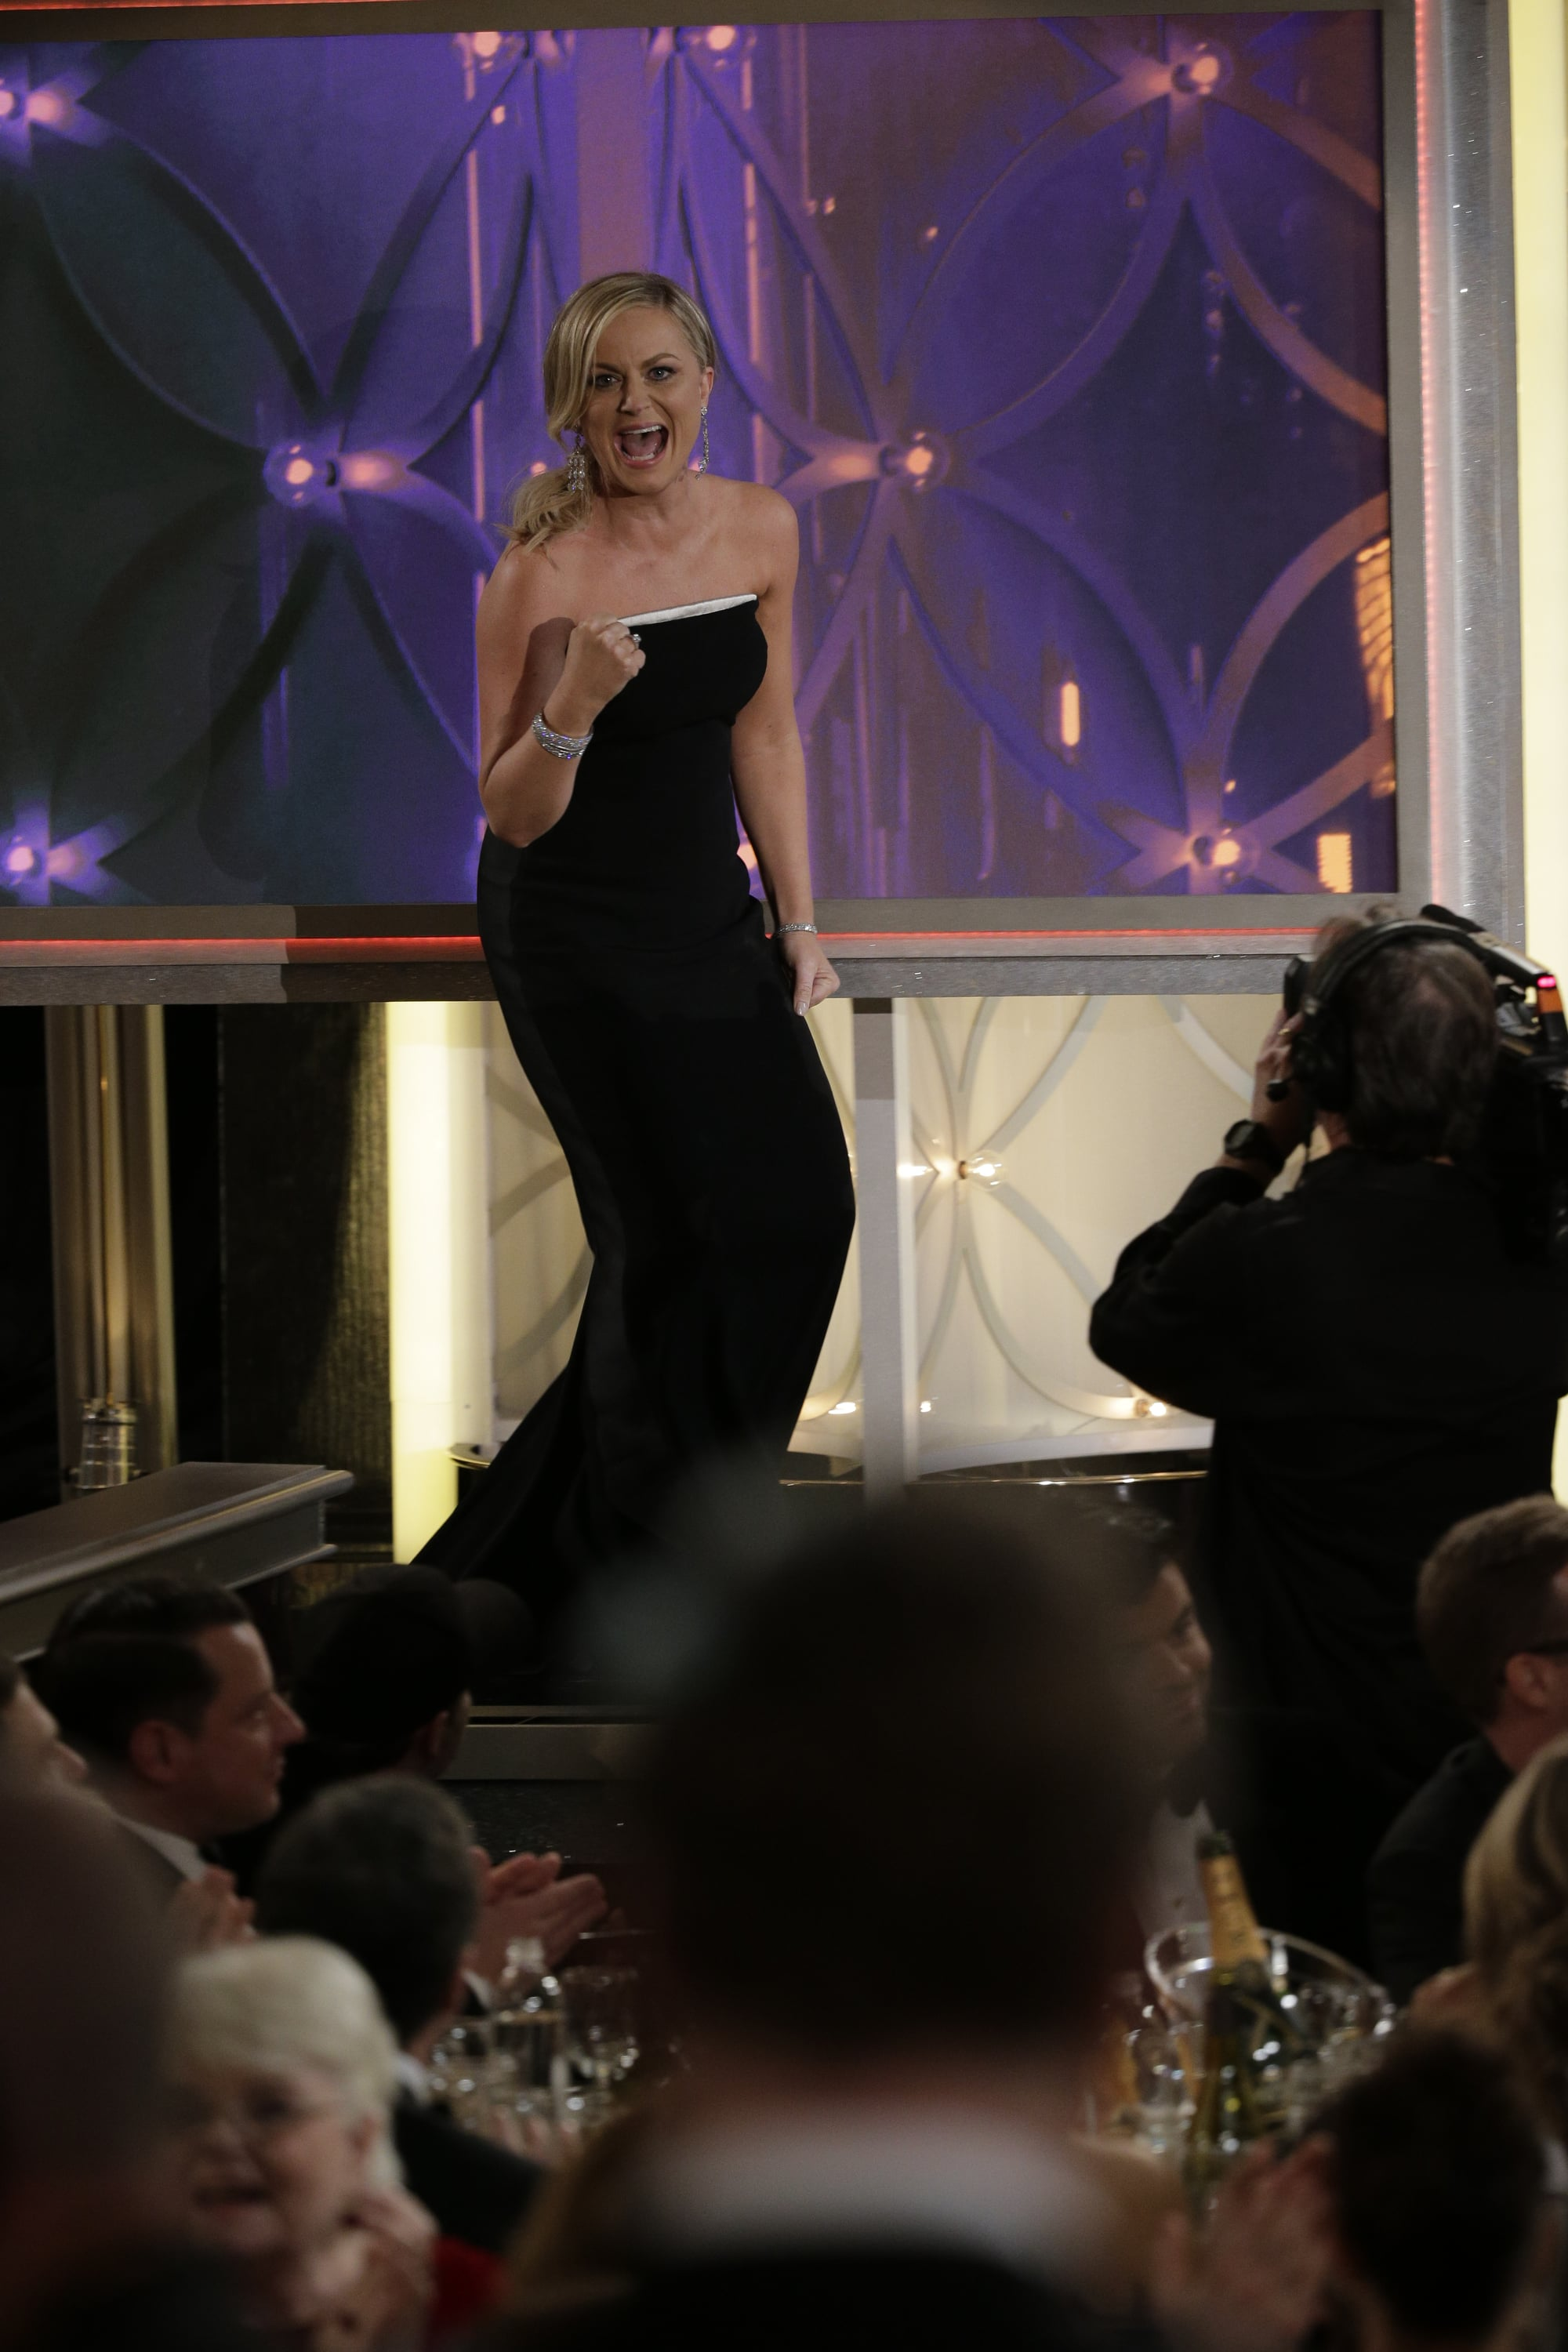 Amy Poehler Screamed When She Took the Golden Globes Stage